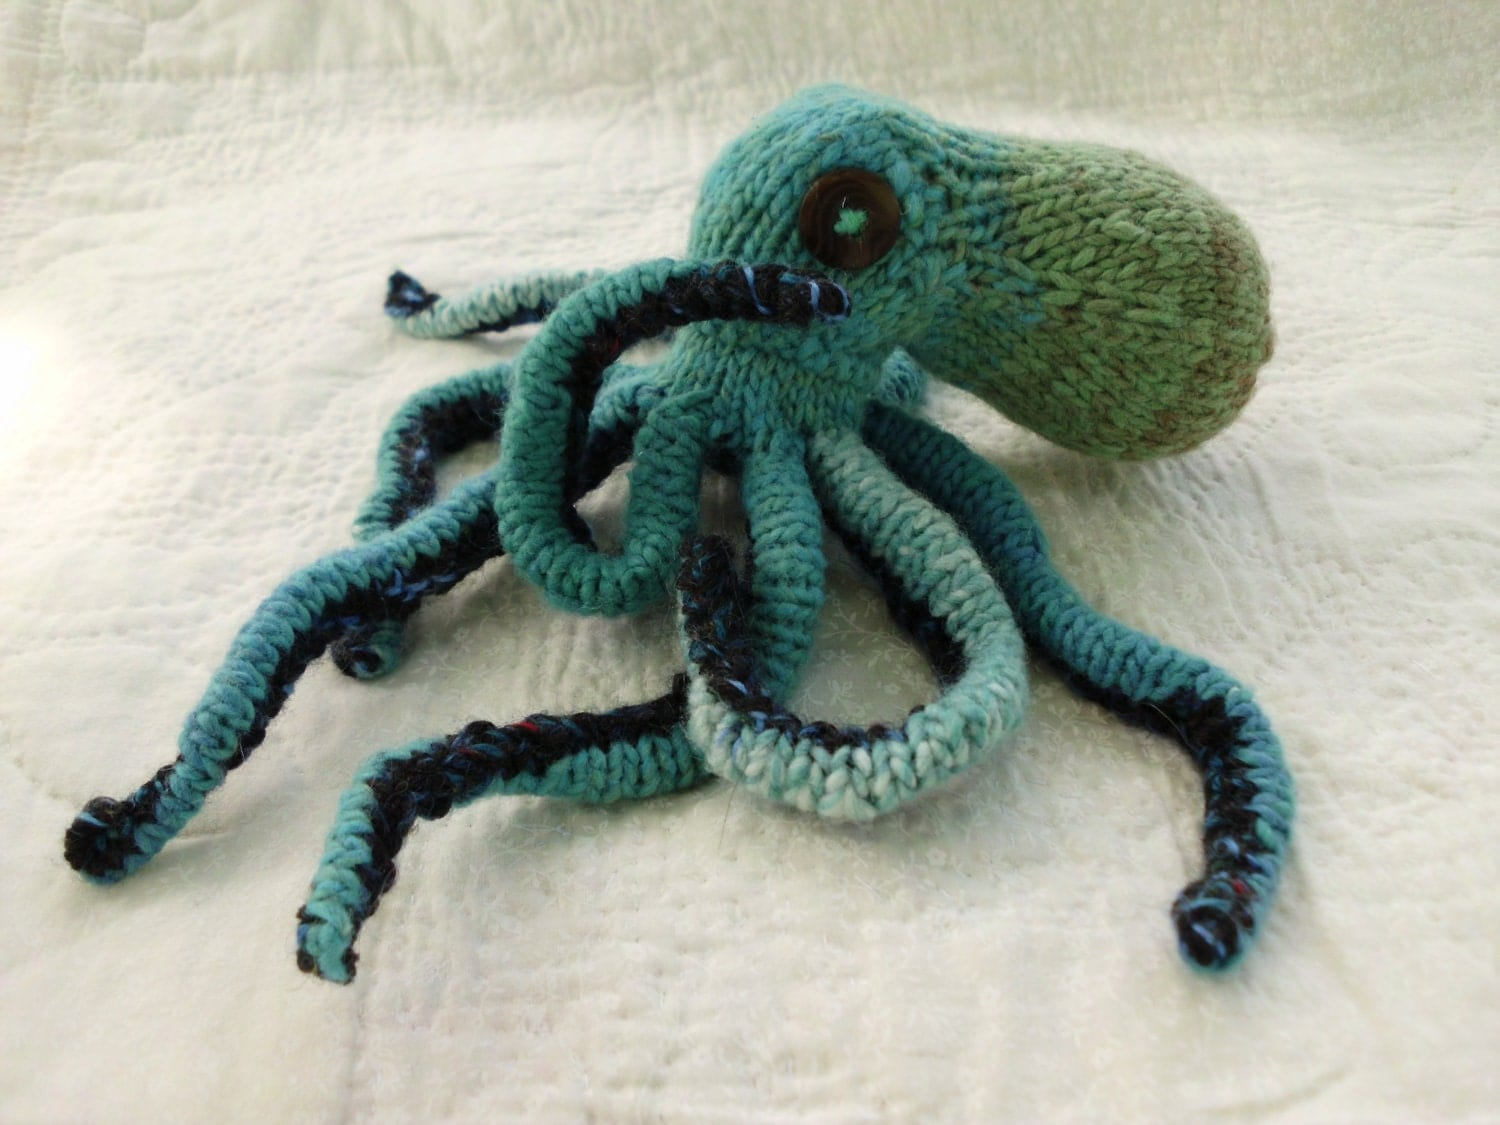 Knitting Pattern Octopus Toy : Hand Knit Amigurumi Octopus Stuffed Animal Toy